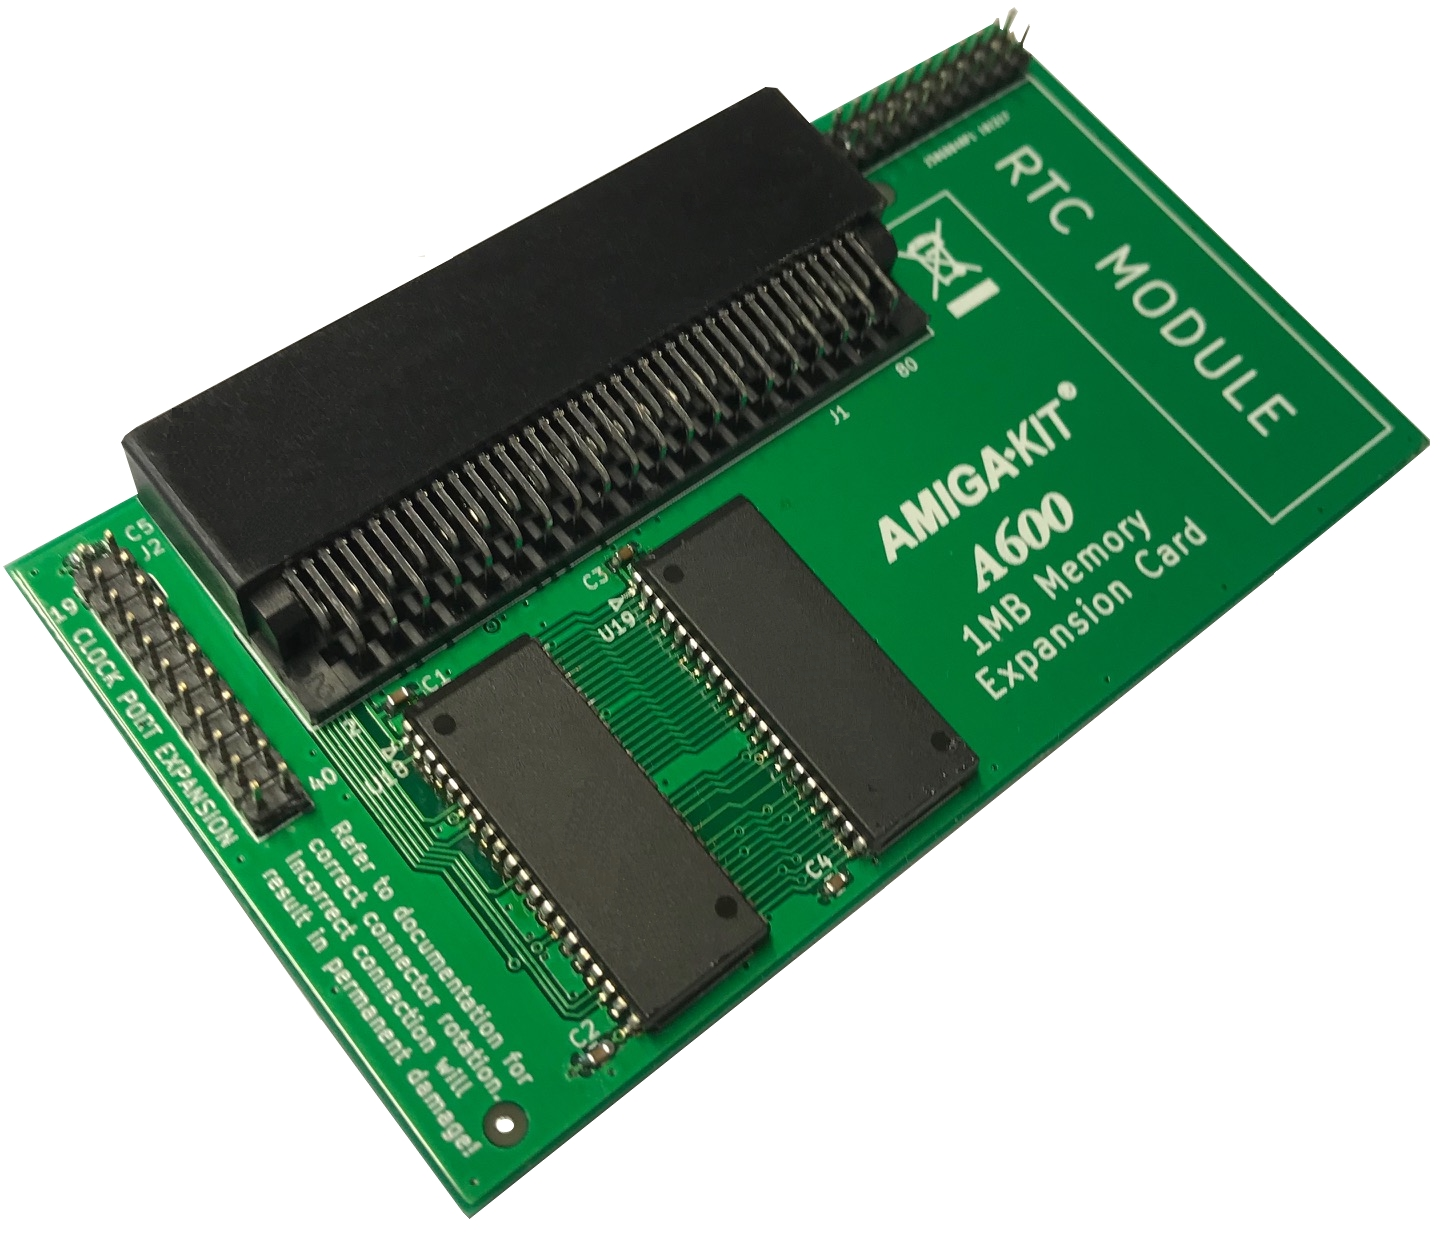 A600 1MB CHIP RAM MEMORY EXPANSION (AMIGA 600)